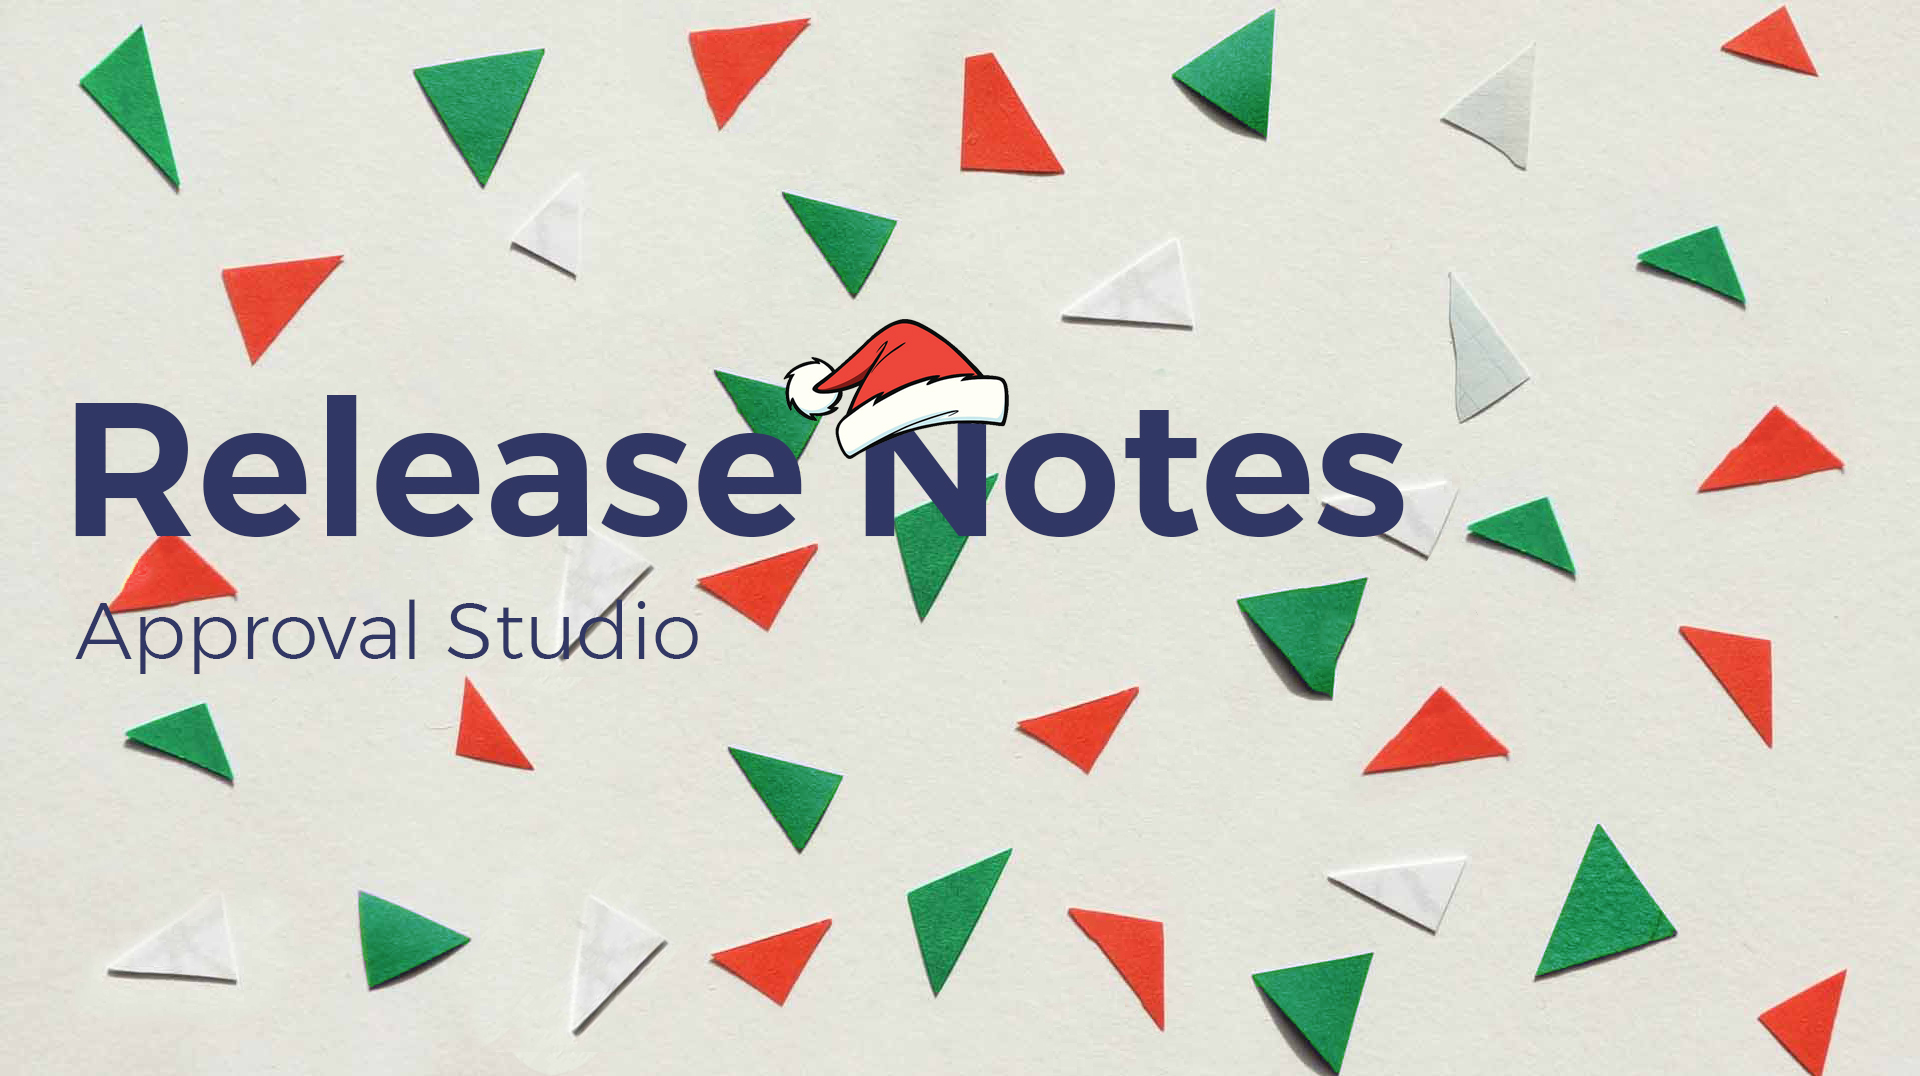 Release Notes Christmas Approval Studio